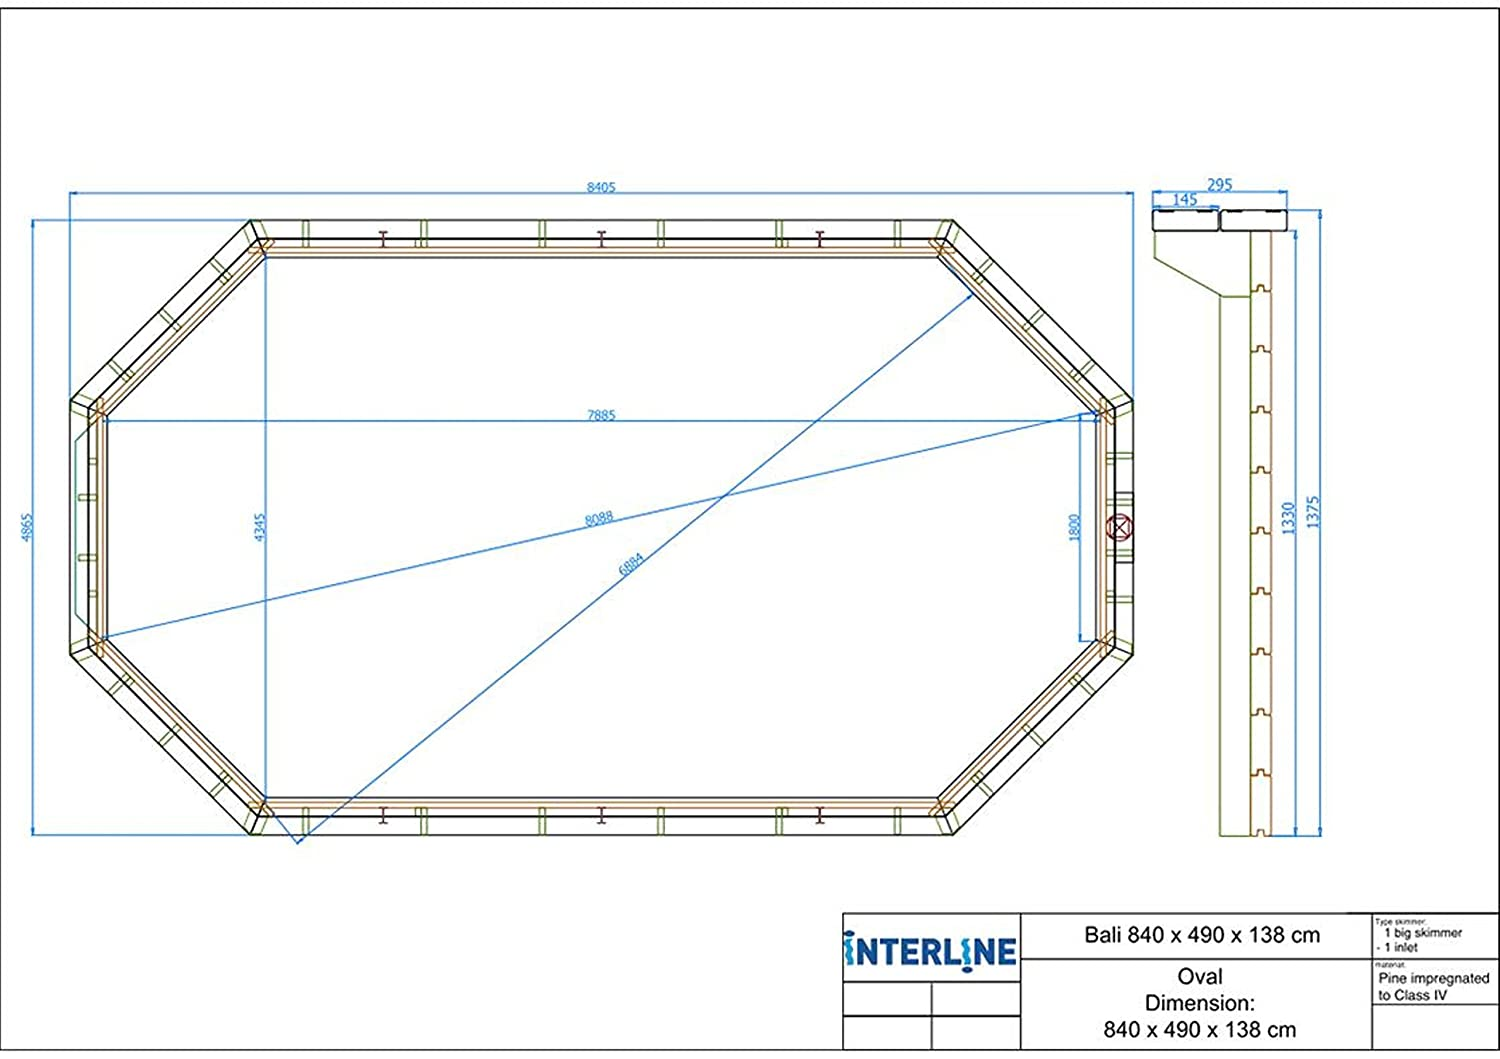 Interline 55600118 - Manta solar para piscinas (verano), color azul: Amazon.es: Jardín